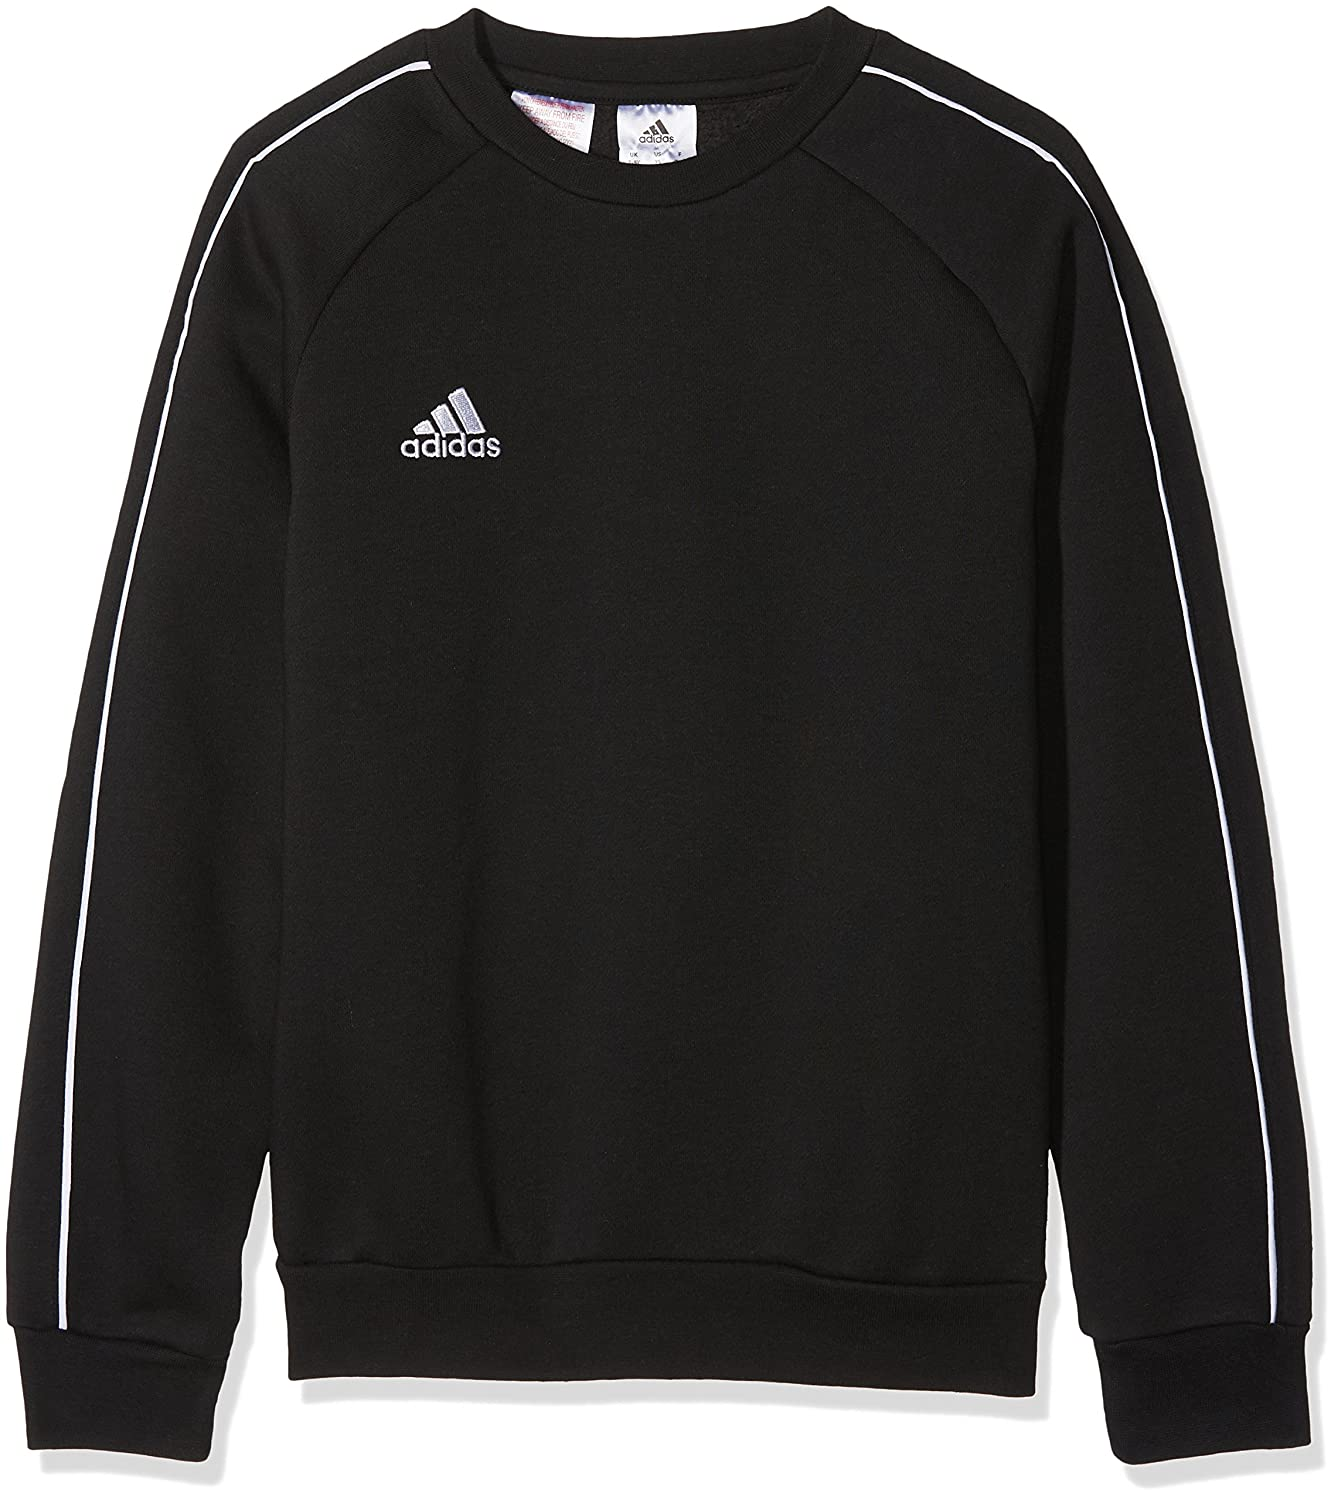 adidas Children's Core 18 Sweat Top CE9062